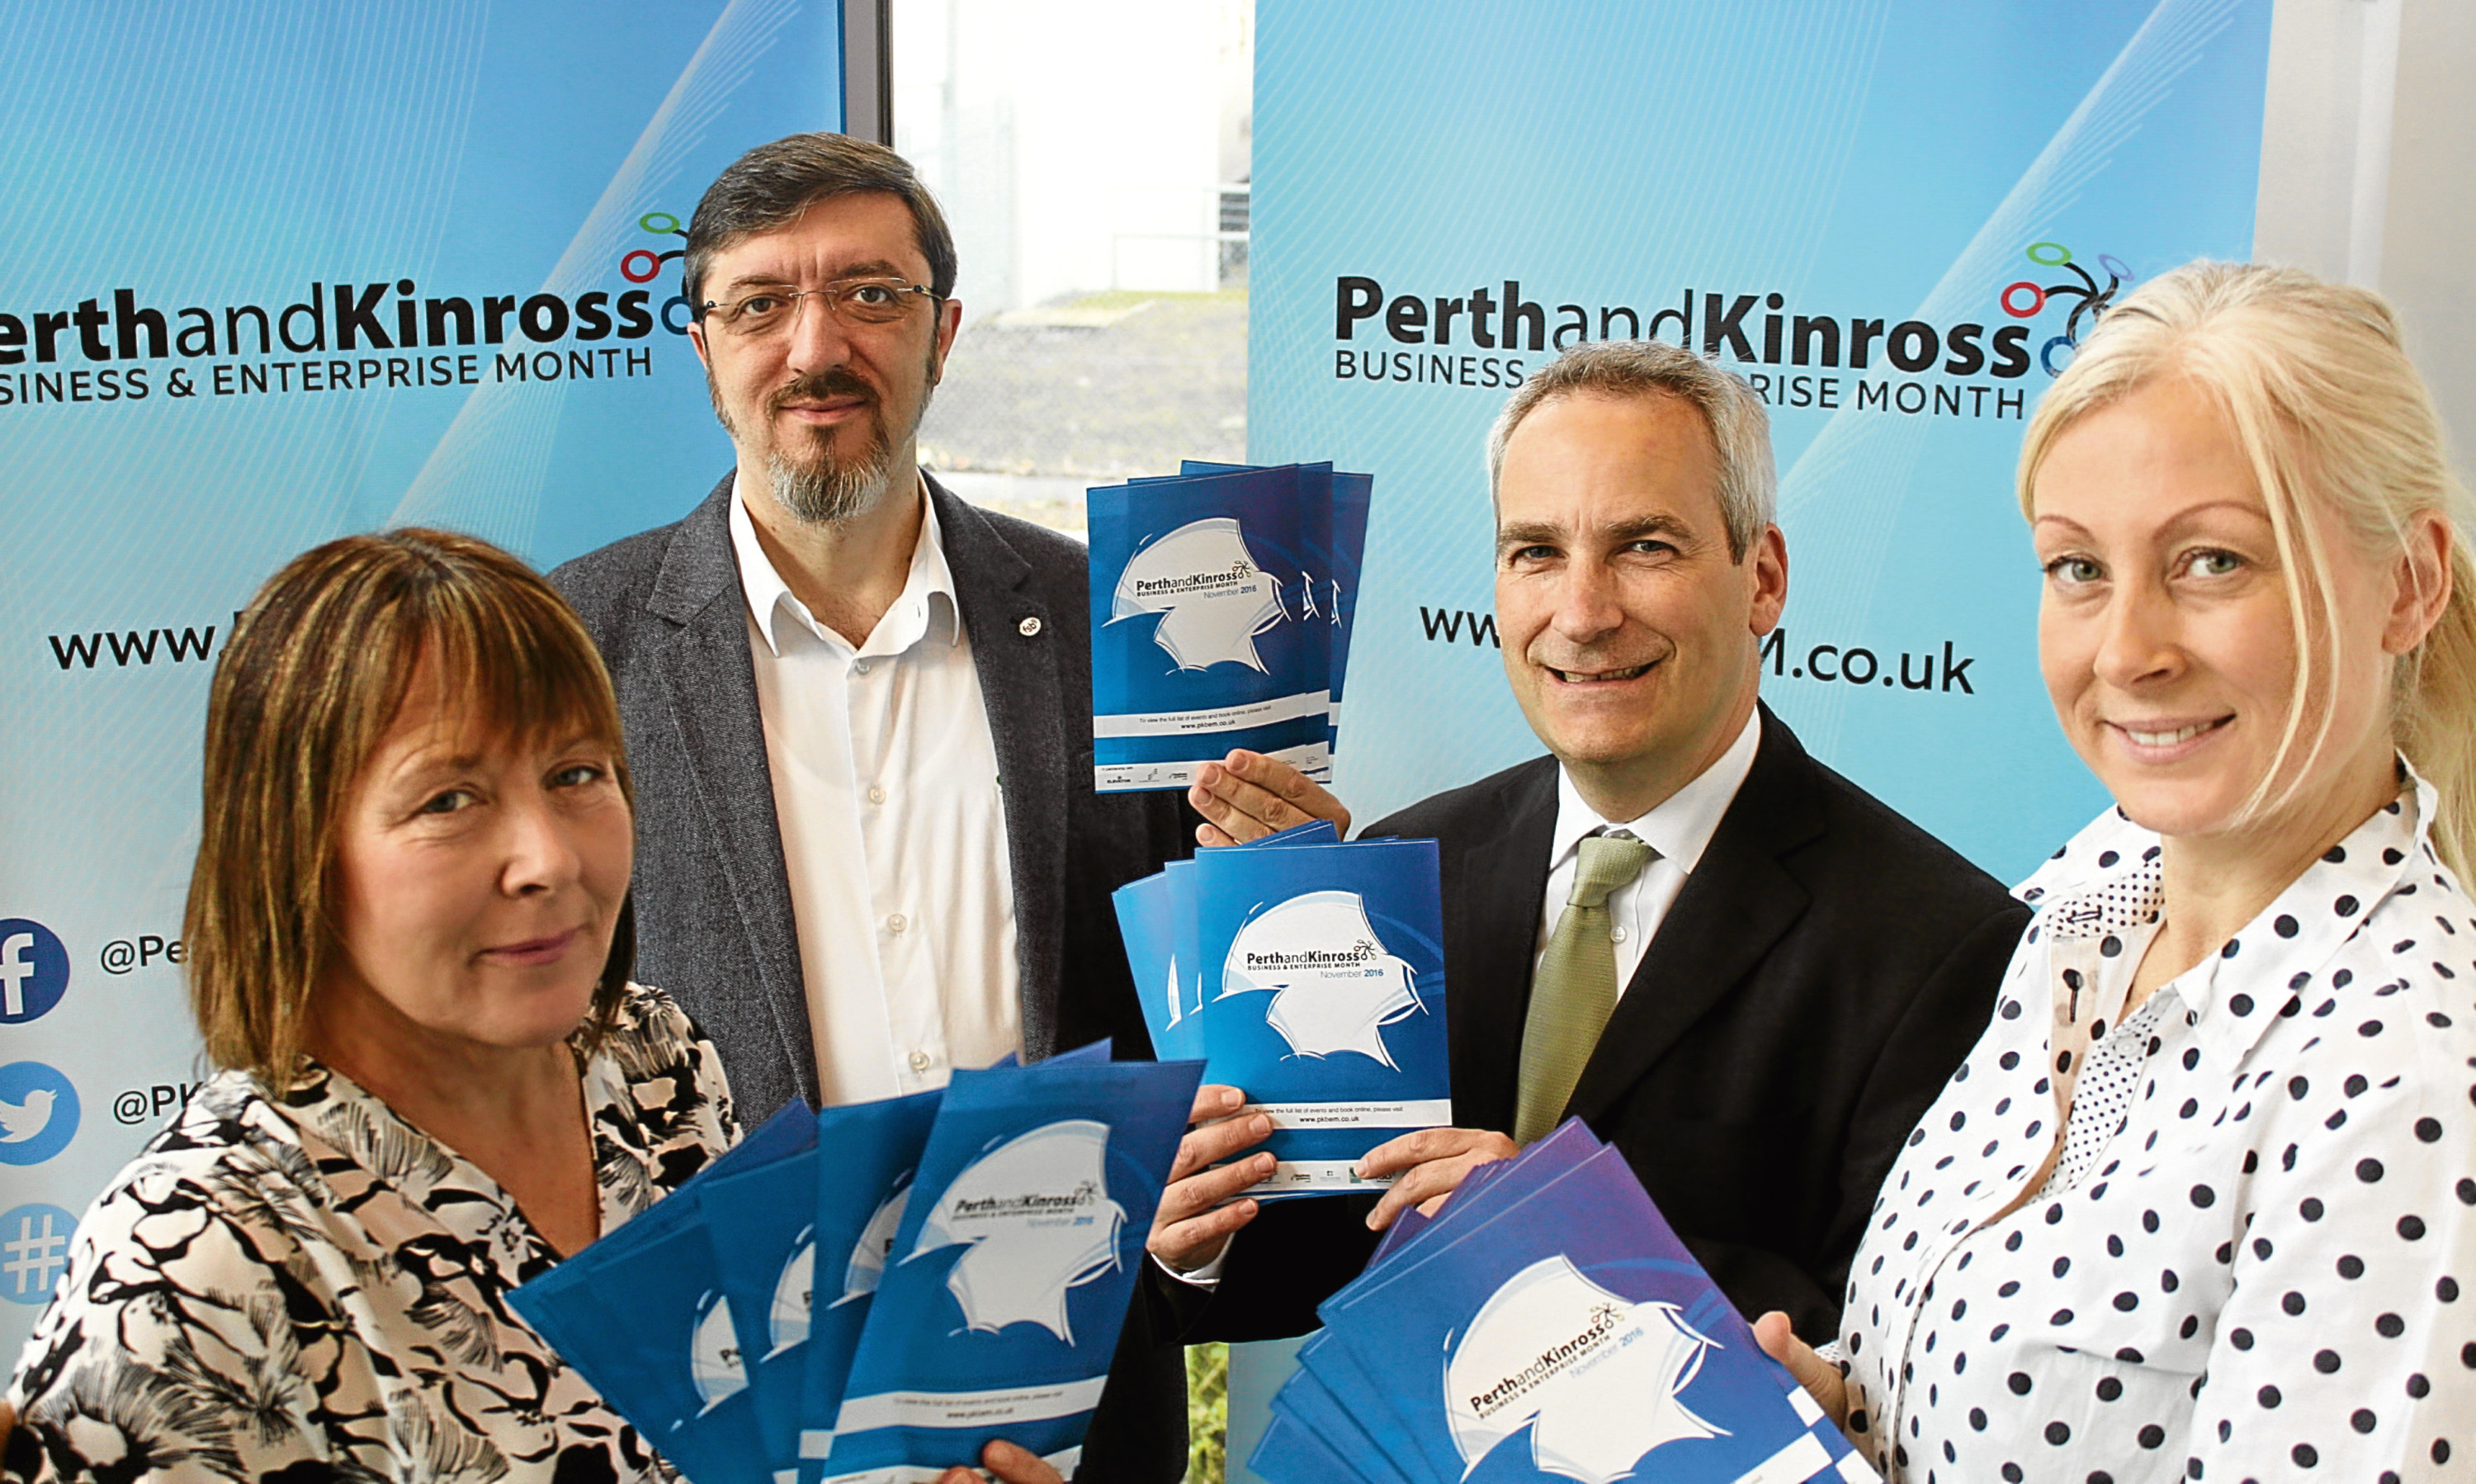 Spreading the word about Perth and Kinross Business and Enterprise month are Lynn McCabe, Corrado Mella, Alan Graham and Perthshire Chamber CEO Vicki Unite.